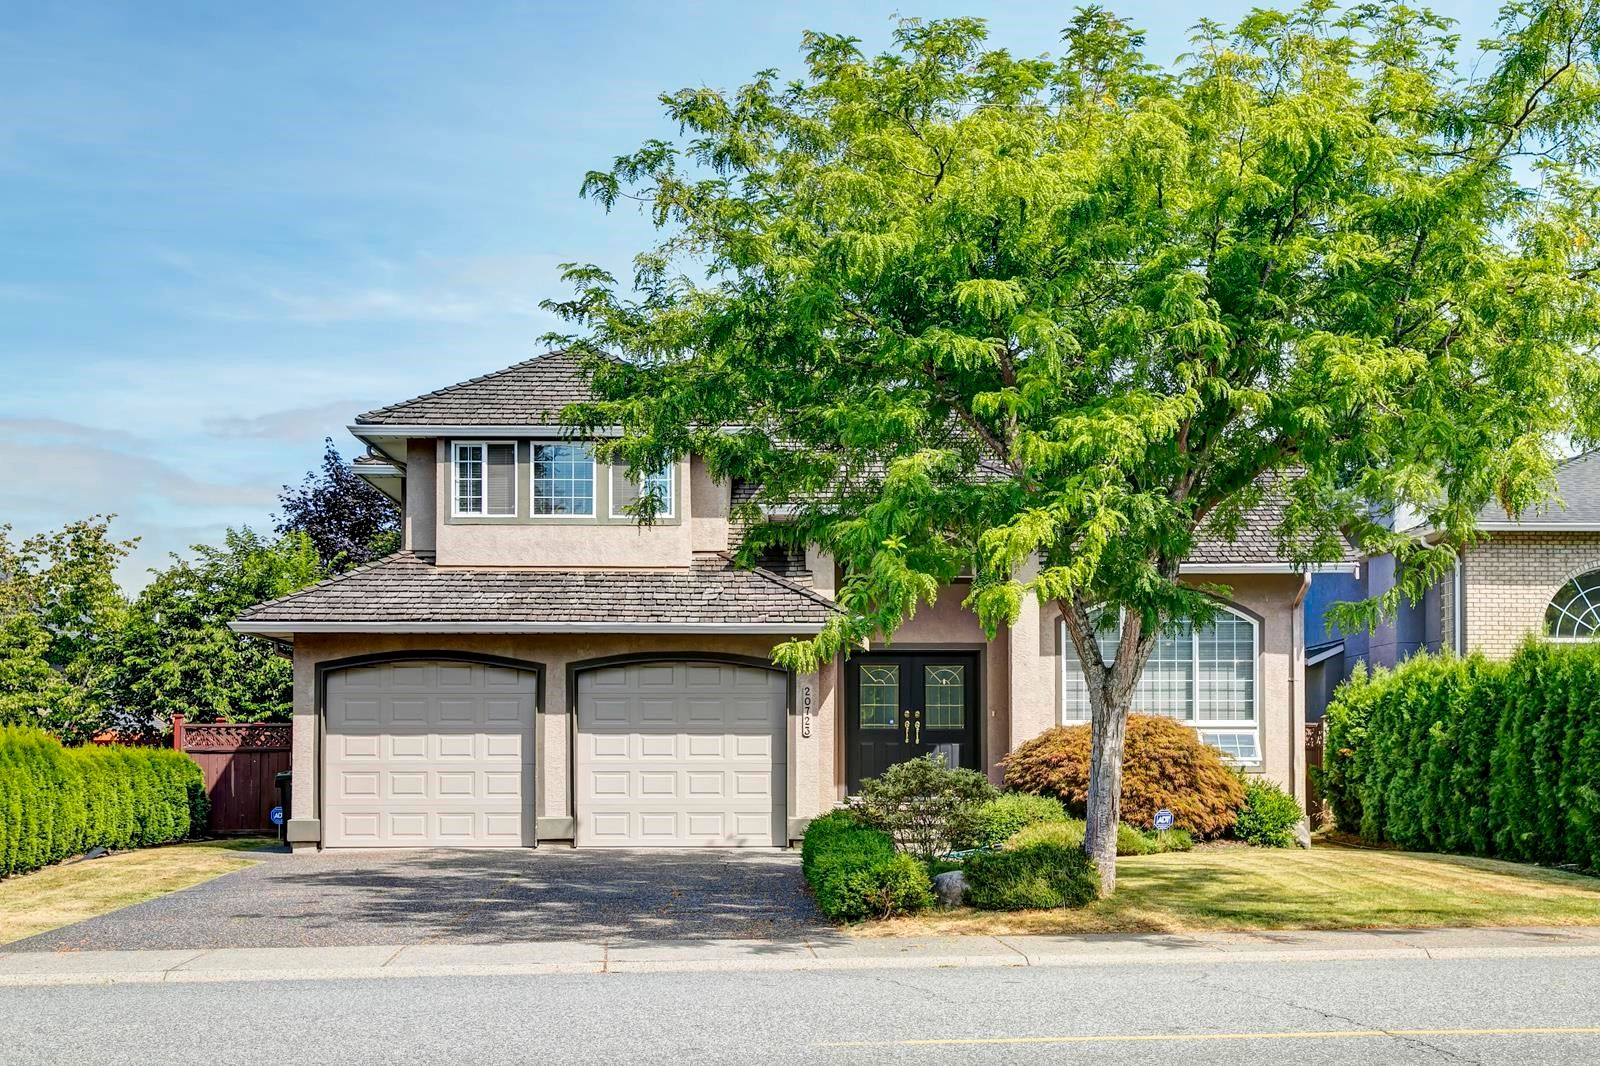 """Main Photo: 20723 90A Avenue in Langley: Walnut Grove House for sale in """"Greenwood Estate"""" : MLS®# R2609766"""